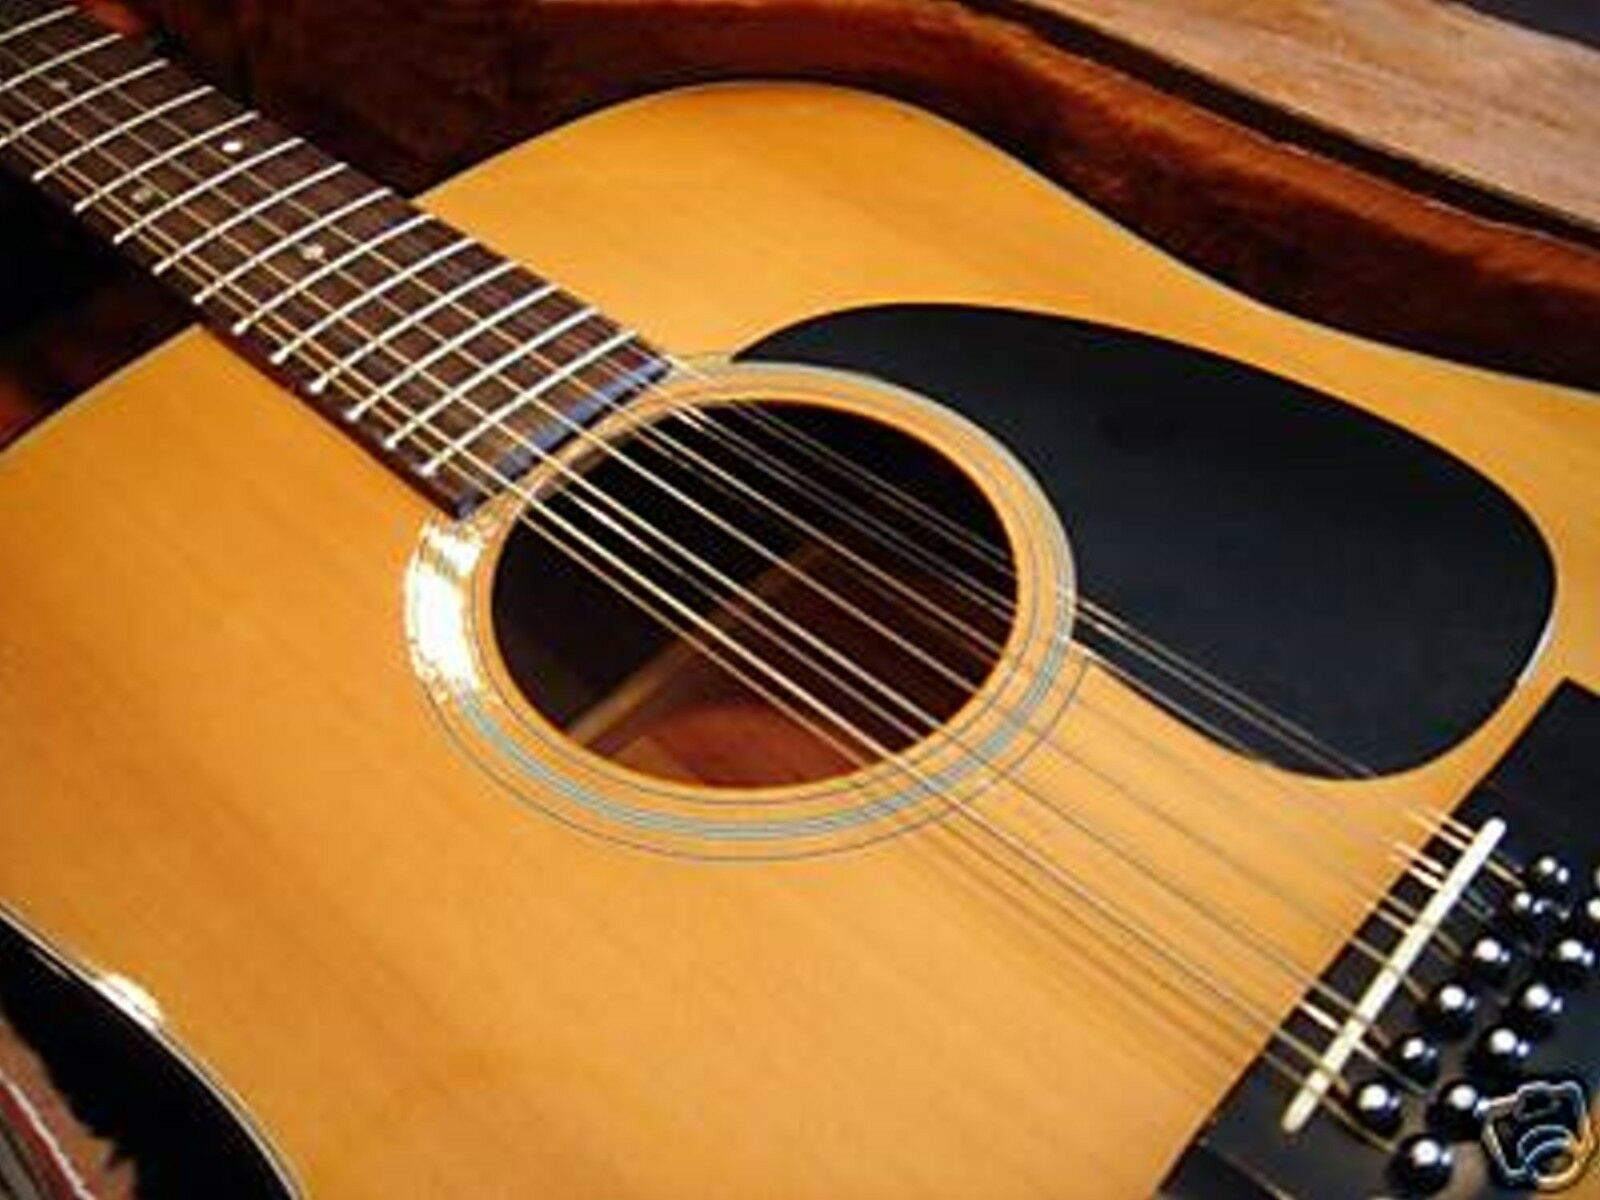 12 string guitar strings for acoustic electric guitars tone tested ebay. Black Bedroom Furniture Sets. Home Design Ideas